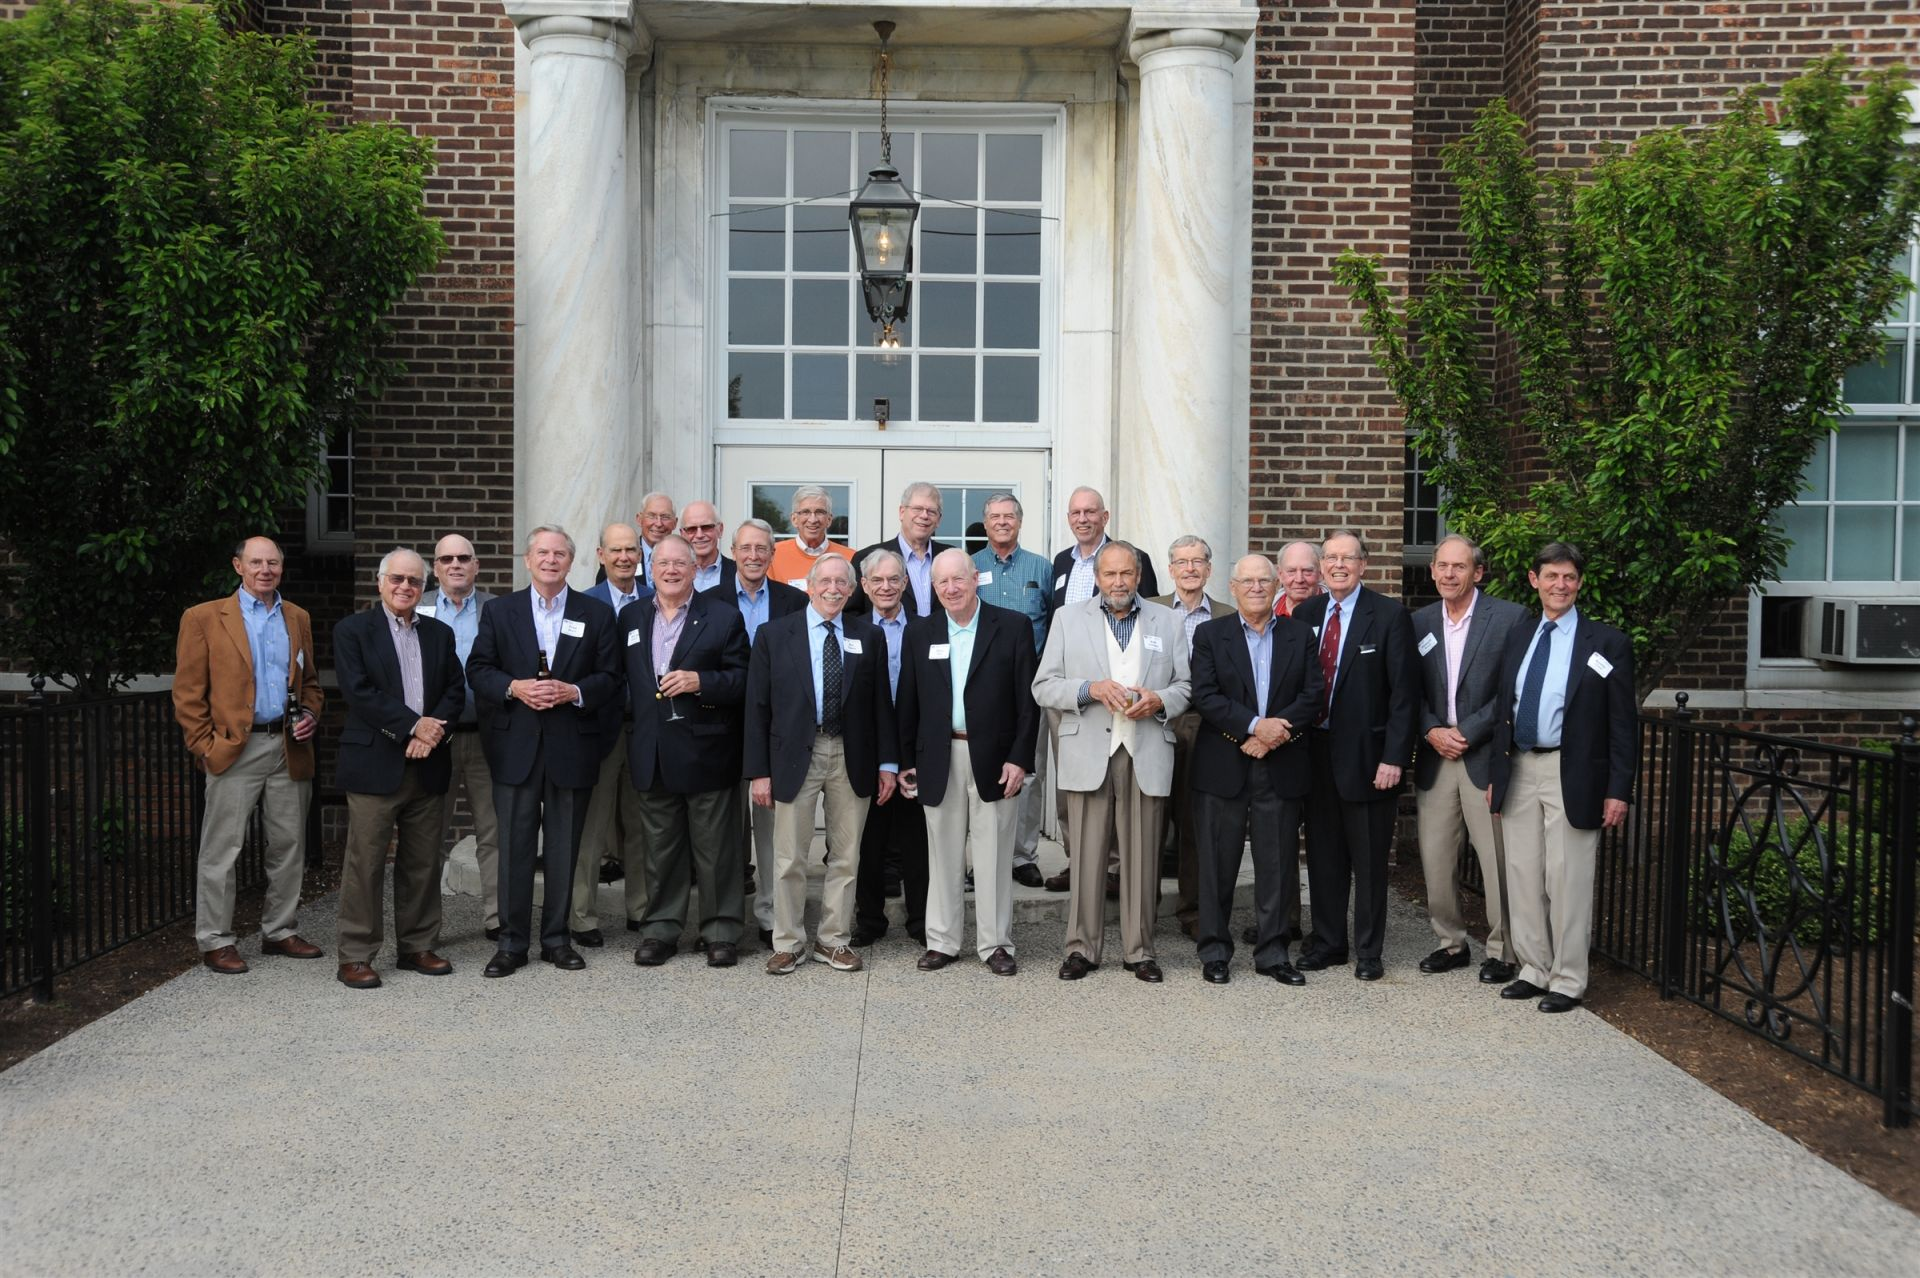 Members of the Class of 1961 enjoy cocktails and dinner at the Shaker Campus